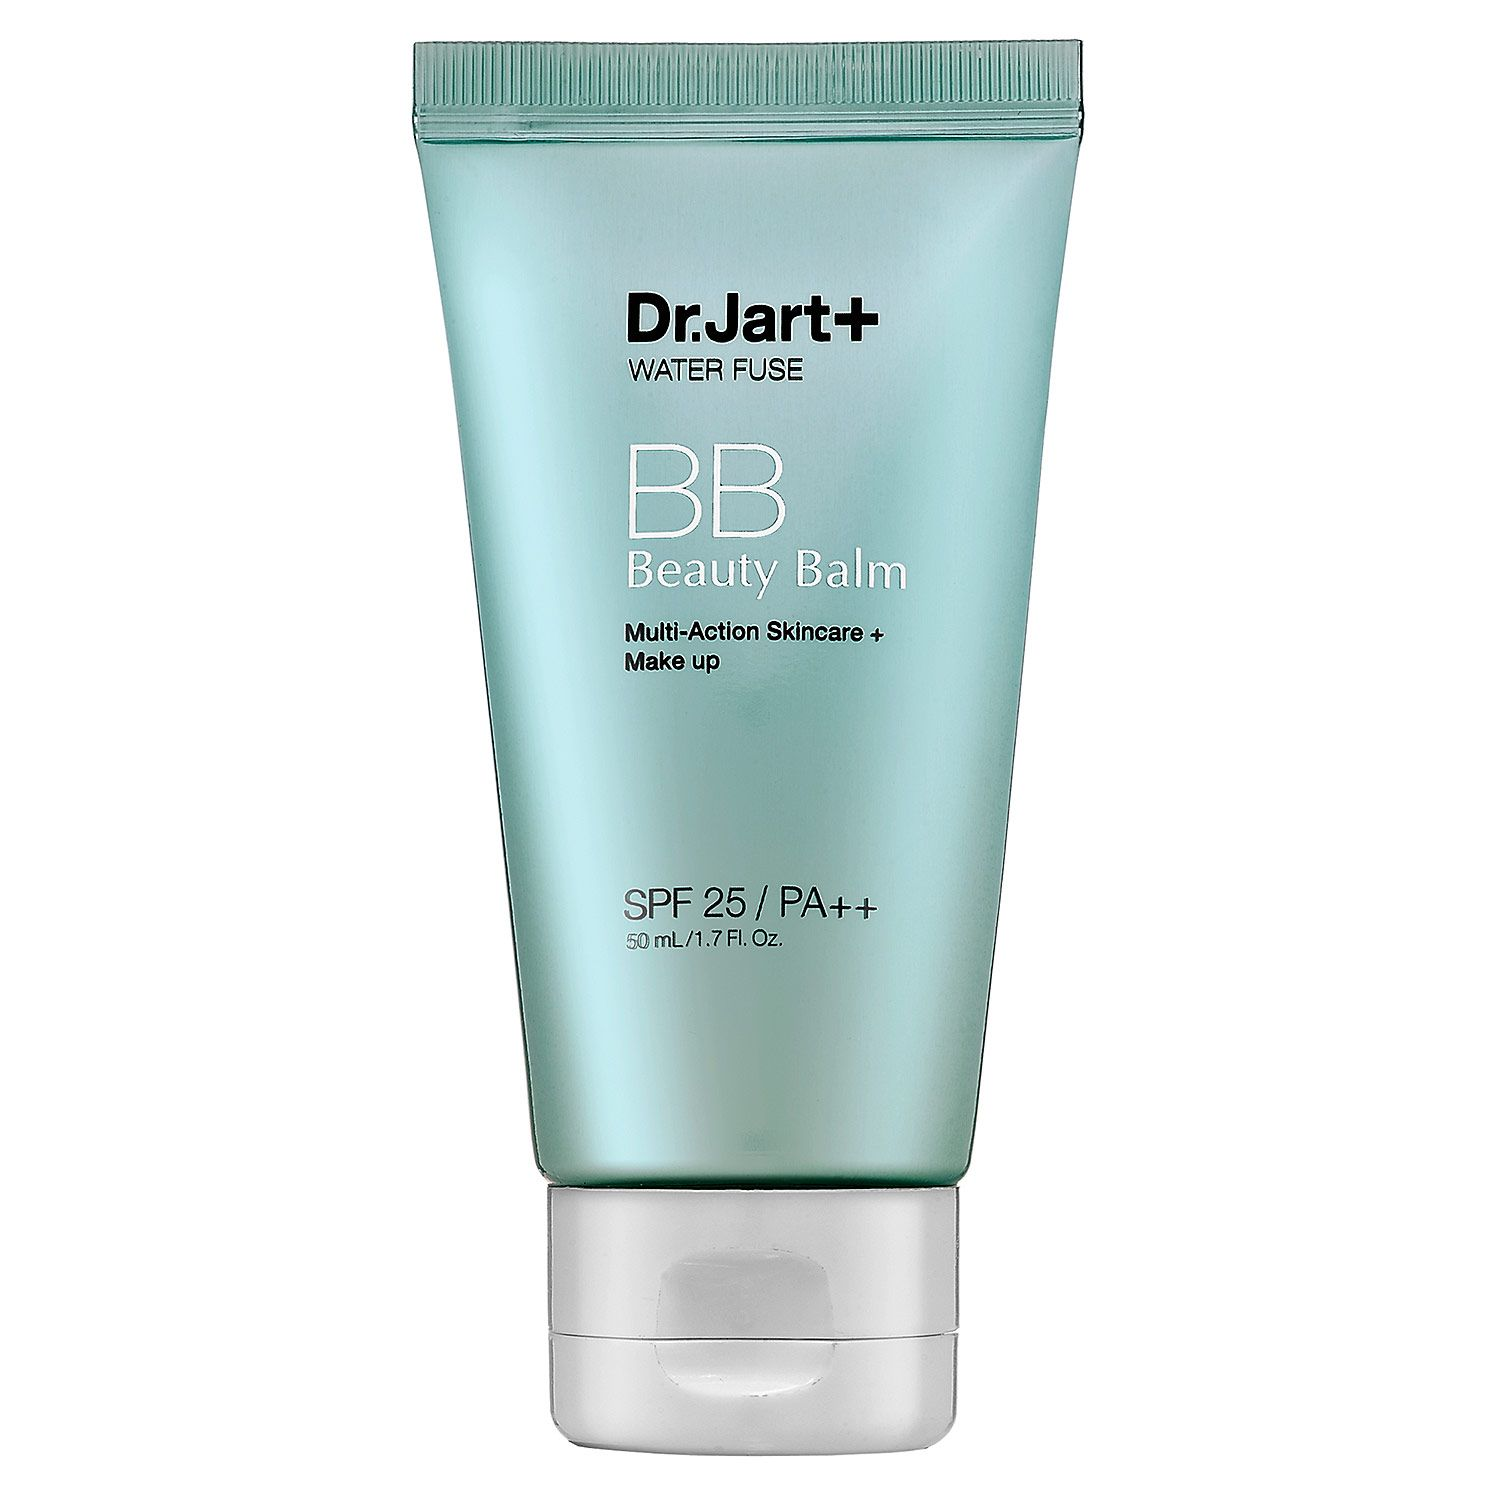 Dr. Jart+ Water Fuse Beauty Balm SPF 25 PA++: Shop BB & CC Creams | Sephora